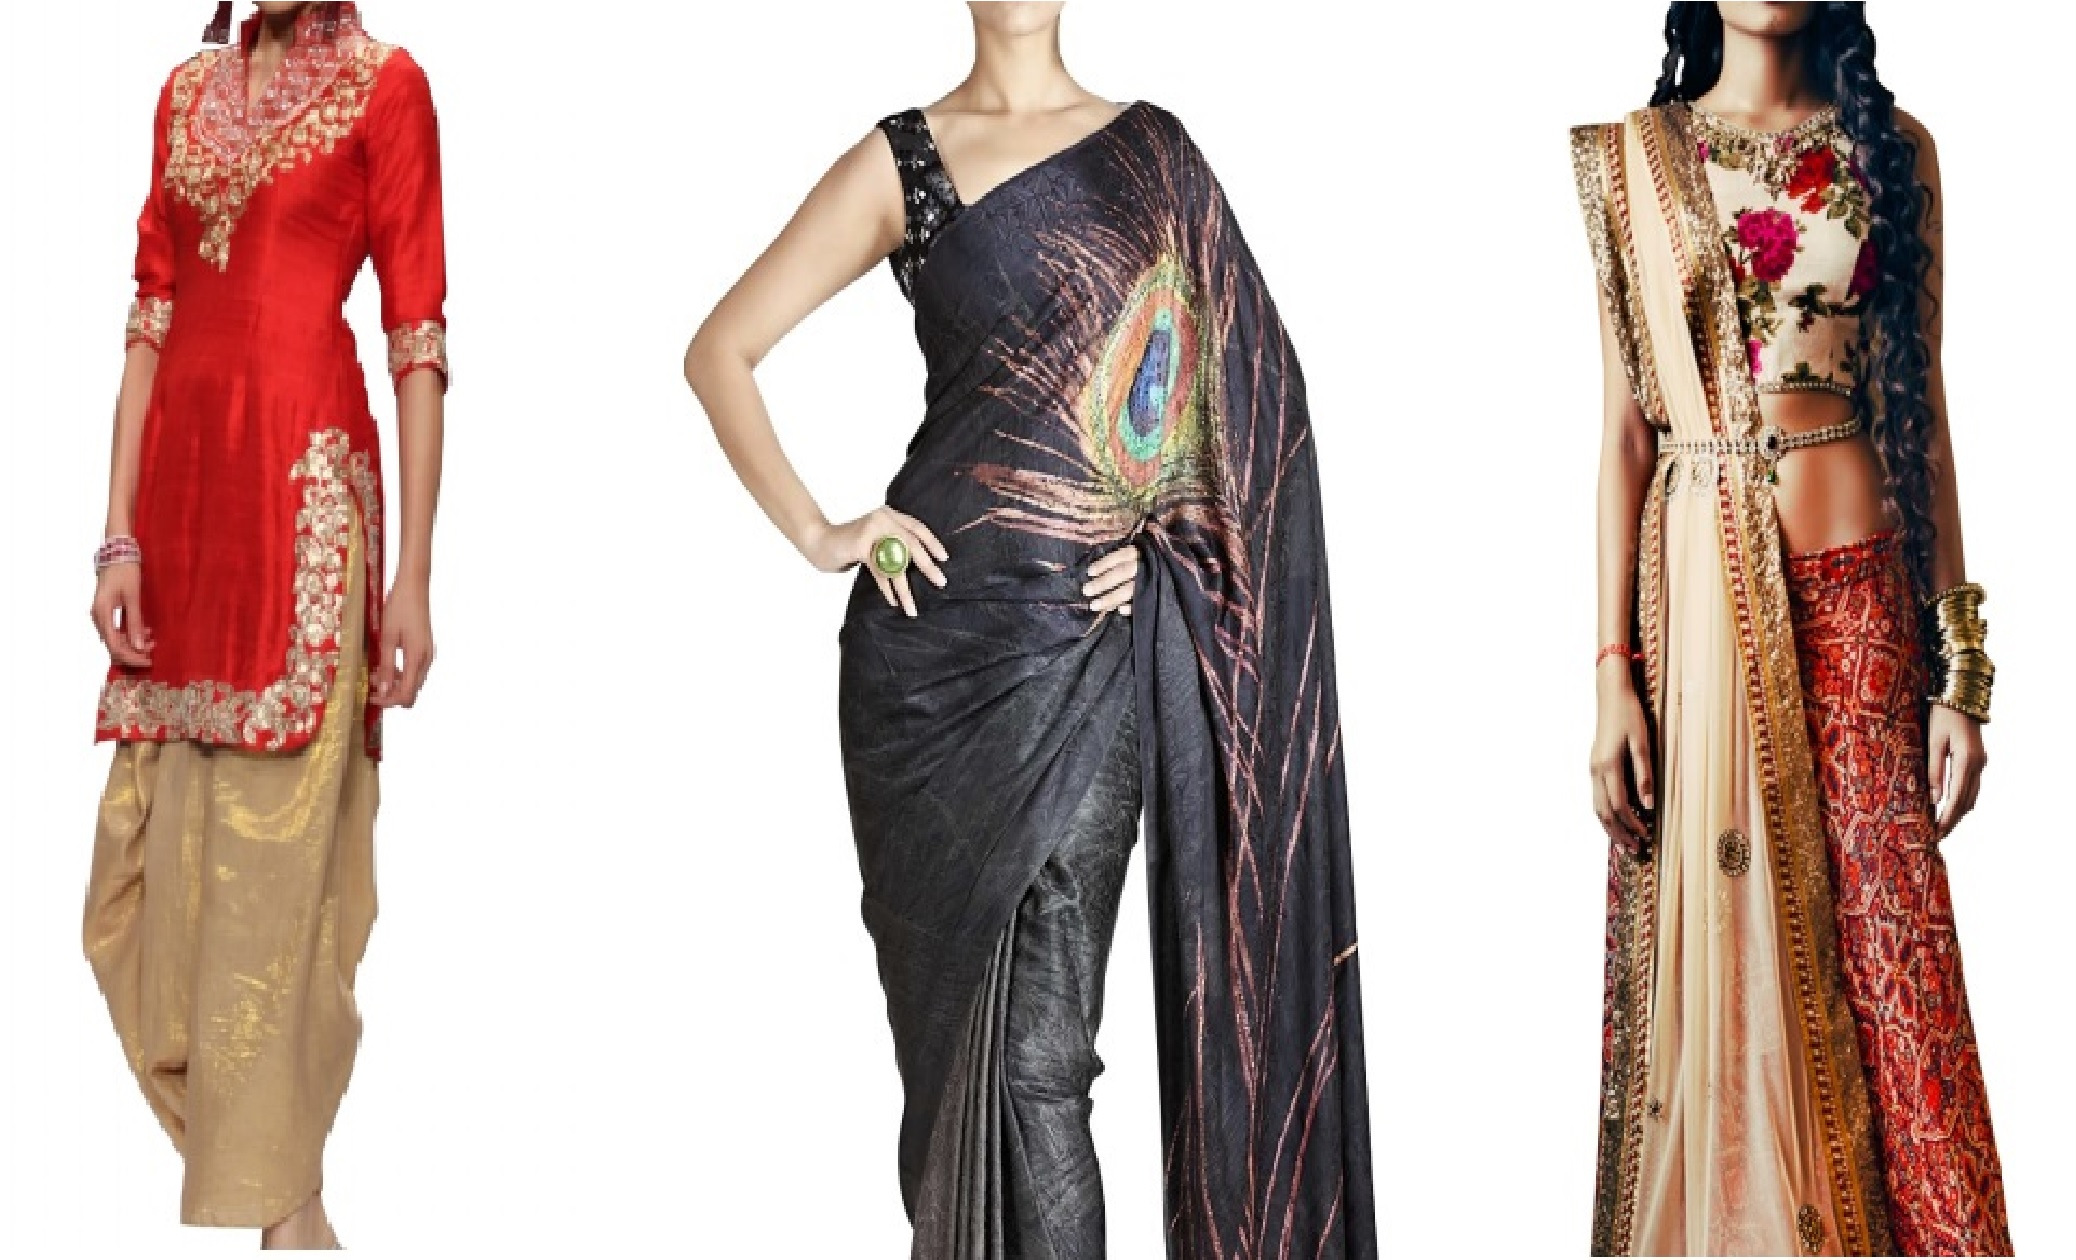 luxury south asian fashion is just a click away with